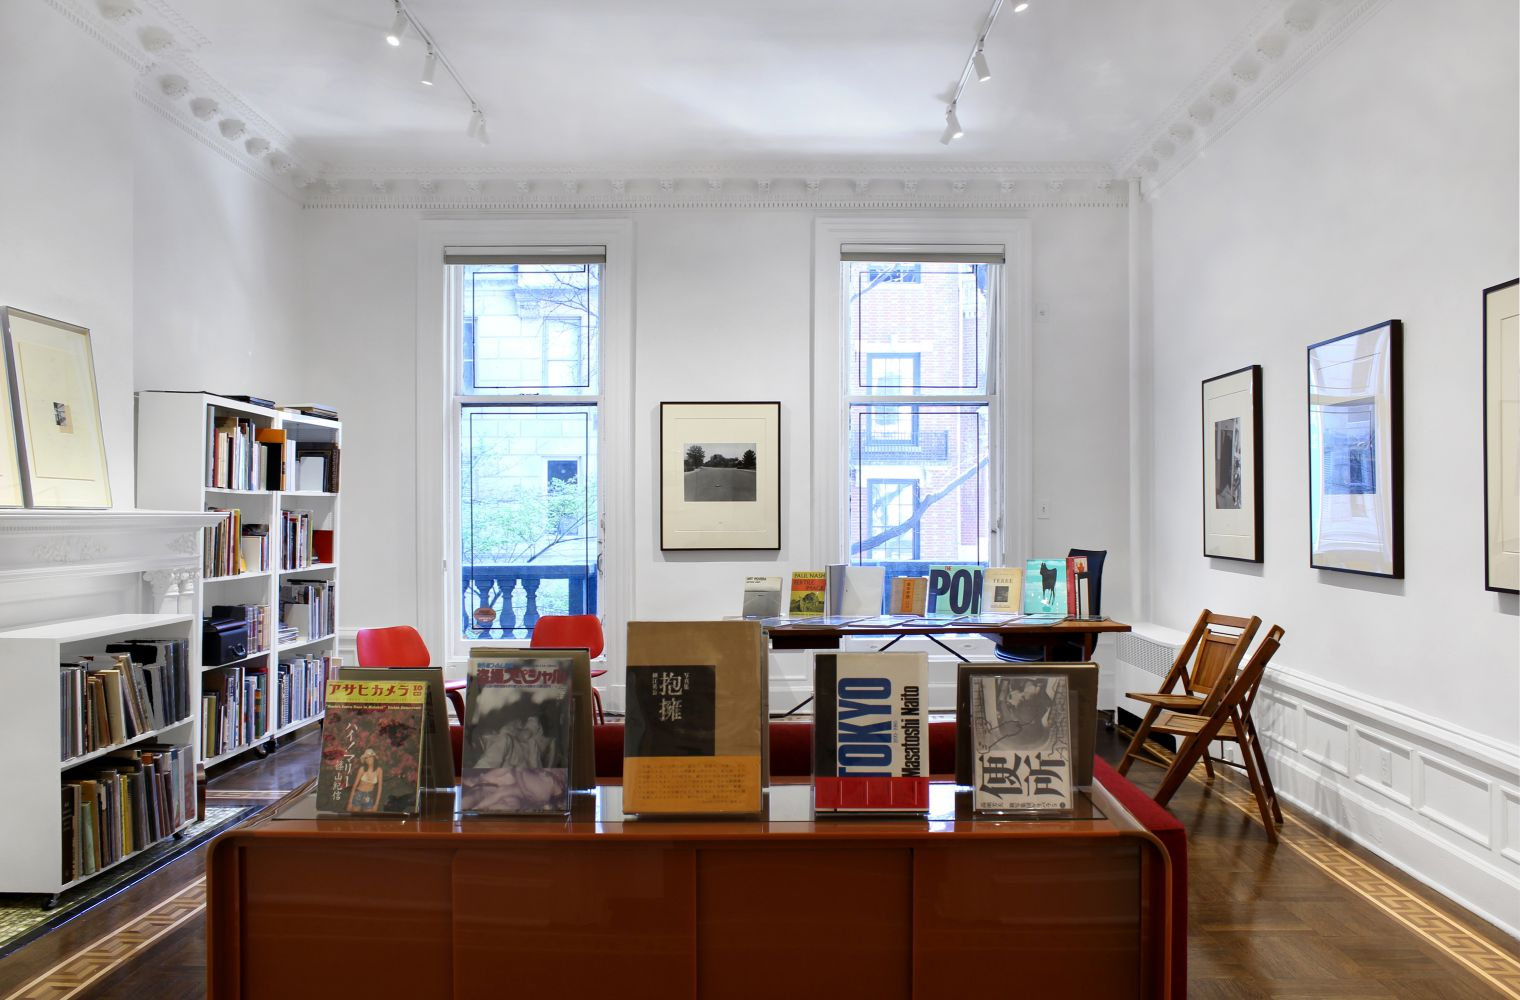 John Gossage: Distractions & Failures (installation view)